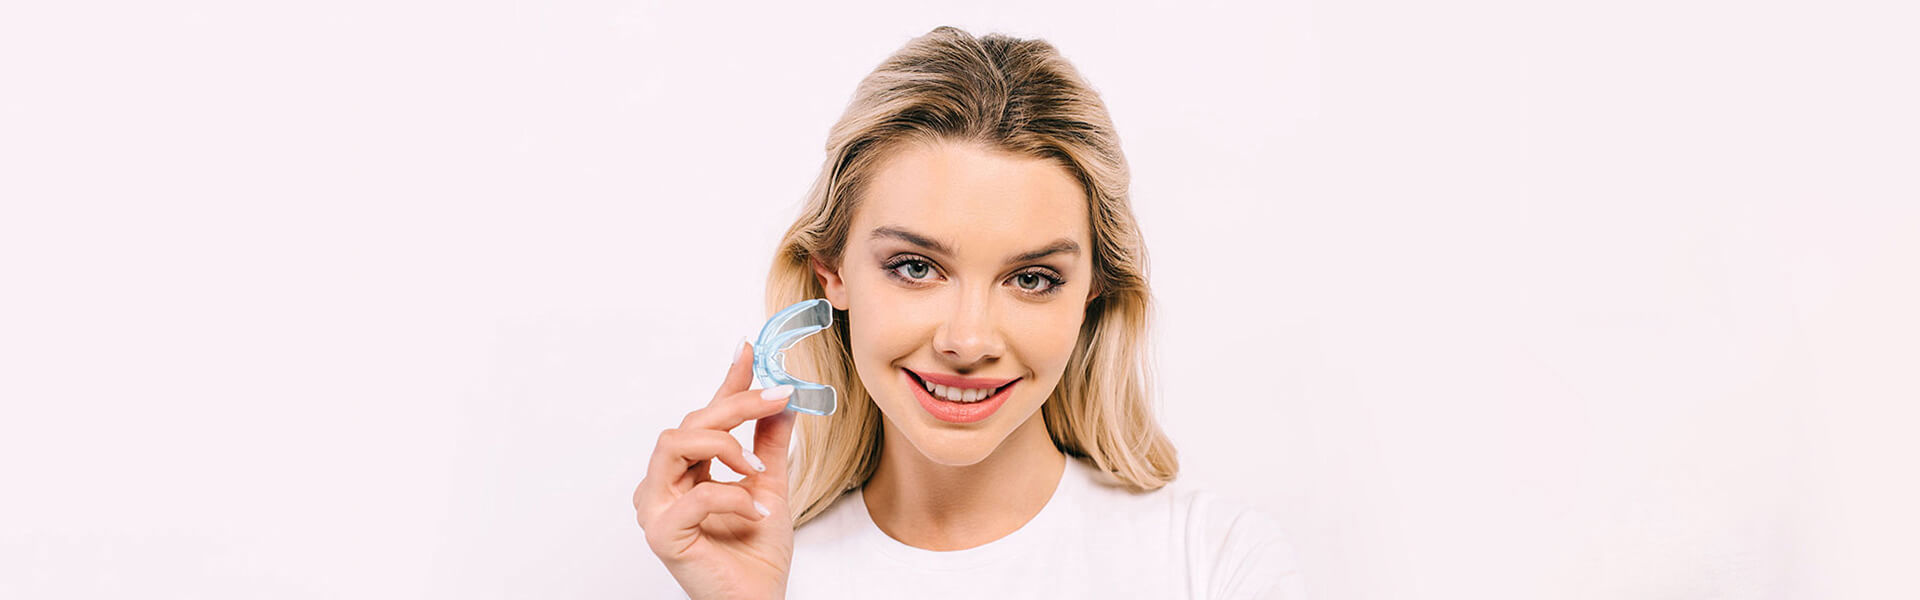 How to Retain Your Smile with Invisalign©